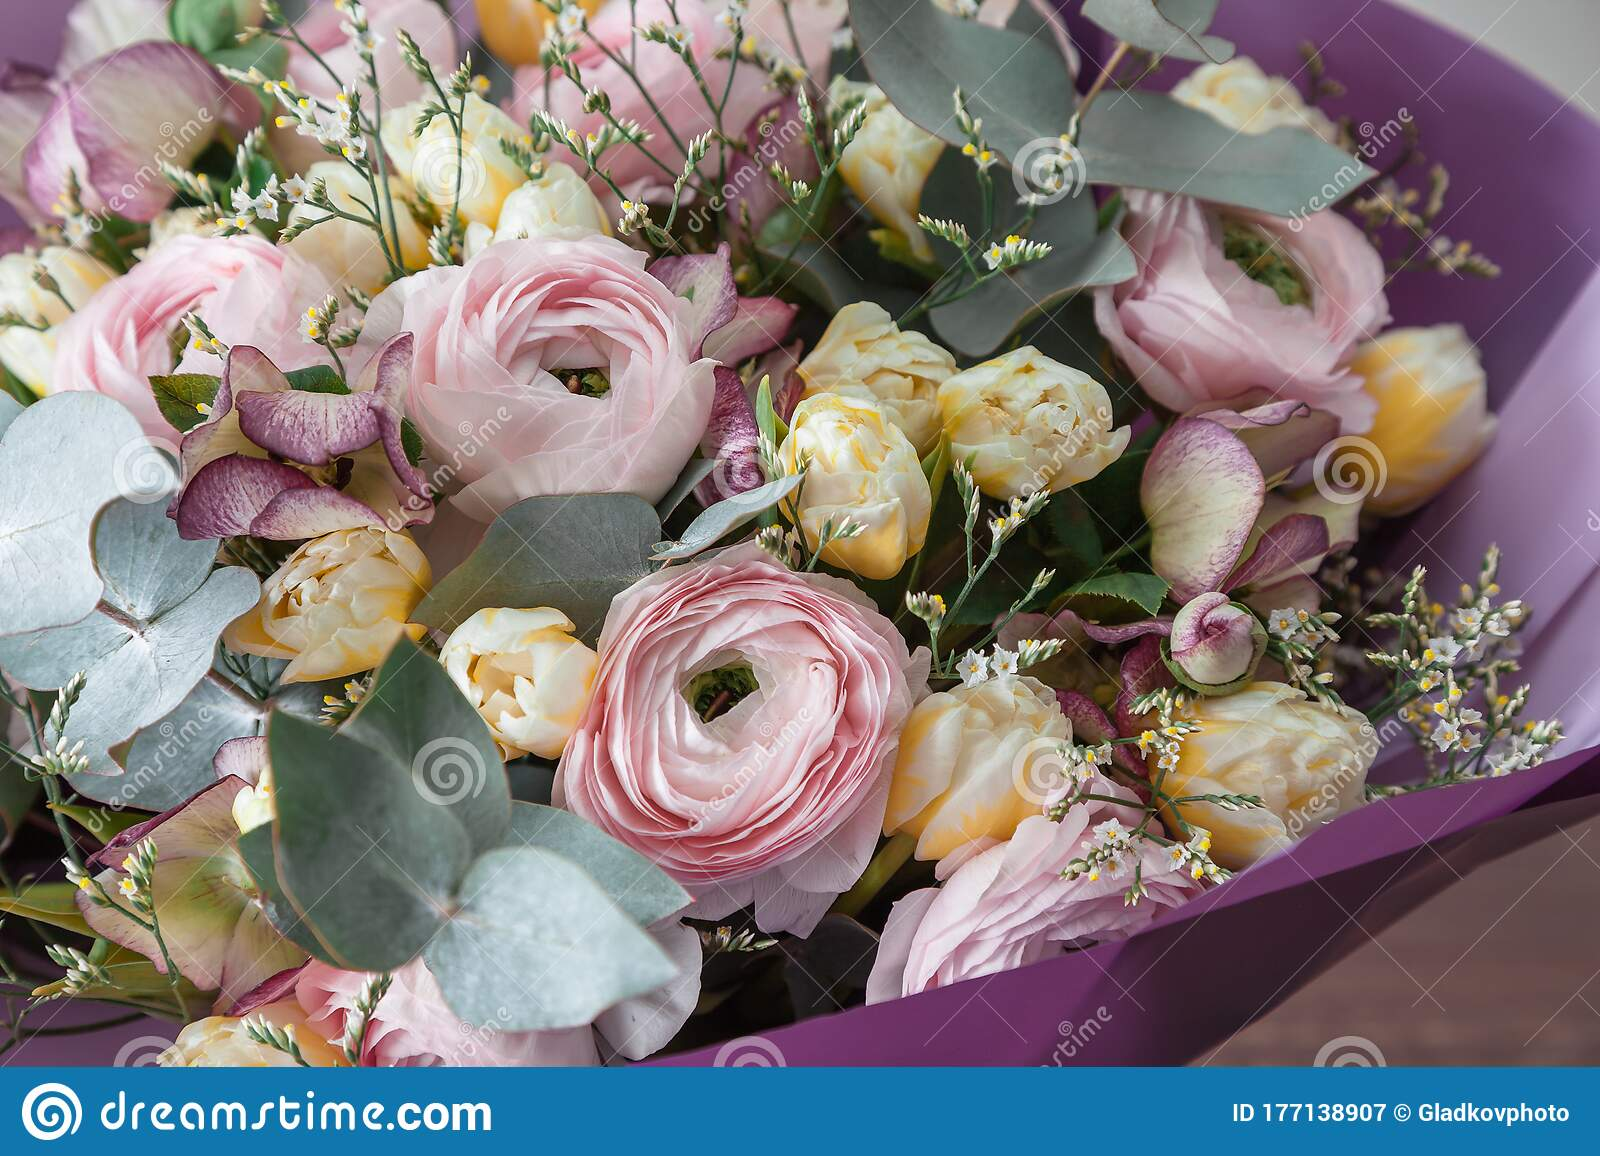 Flowers In Bouquet Close Up Pink Ranunculus And Yellow Tulips Eucalyptus Leaves Stock Image Image Of Flora Color 177138907